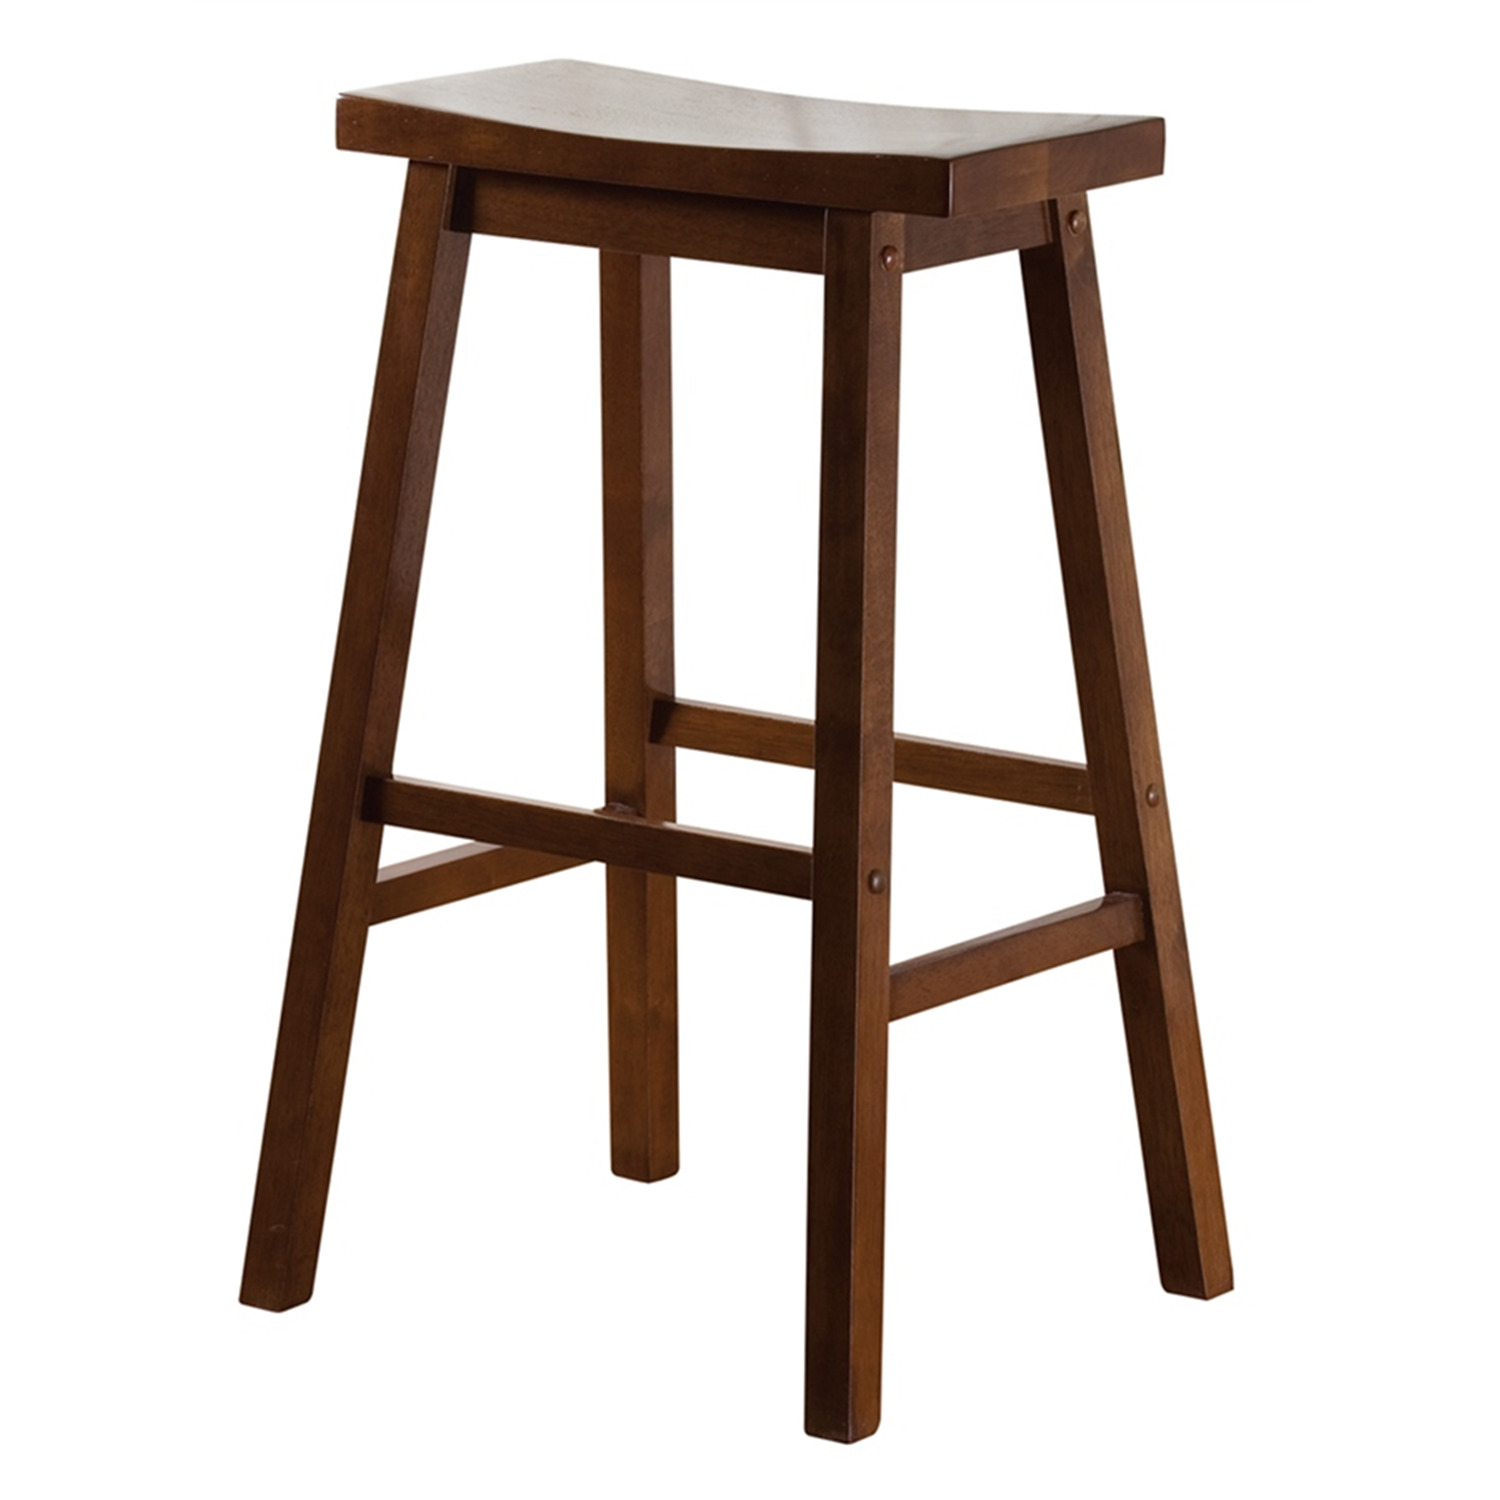 Wood Saddle Bar Stool - [130802WA]